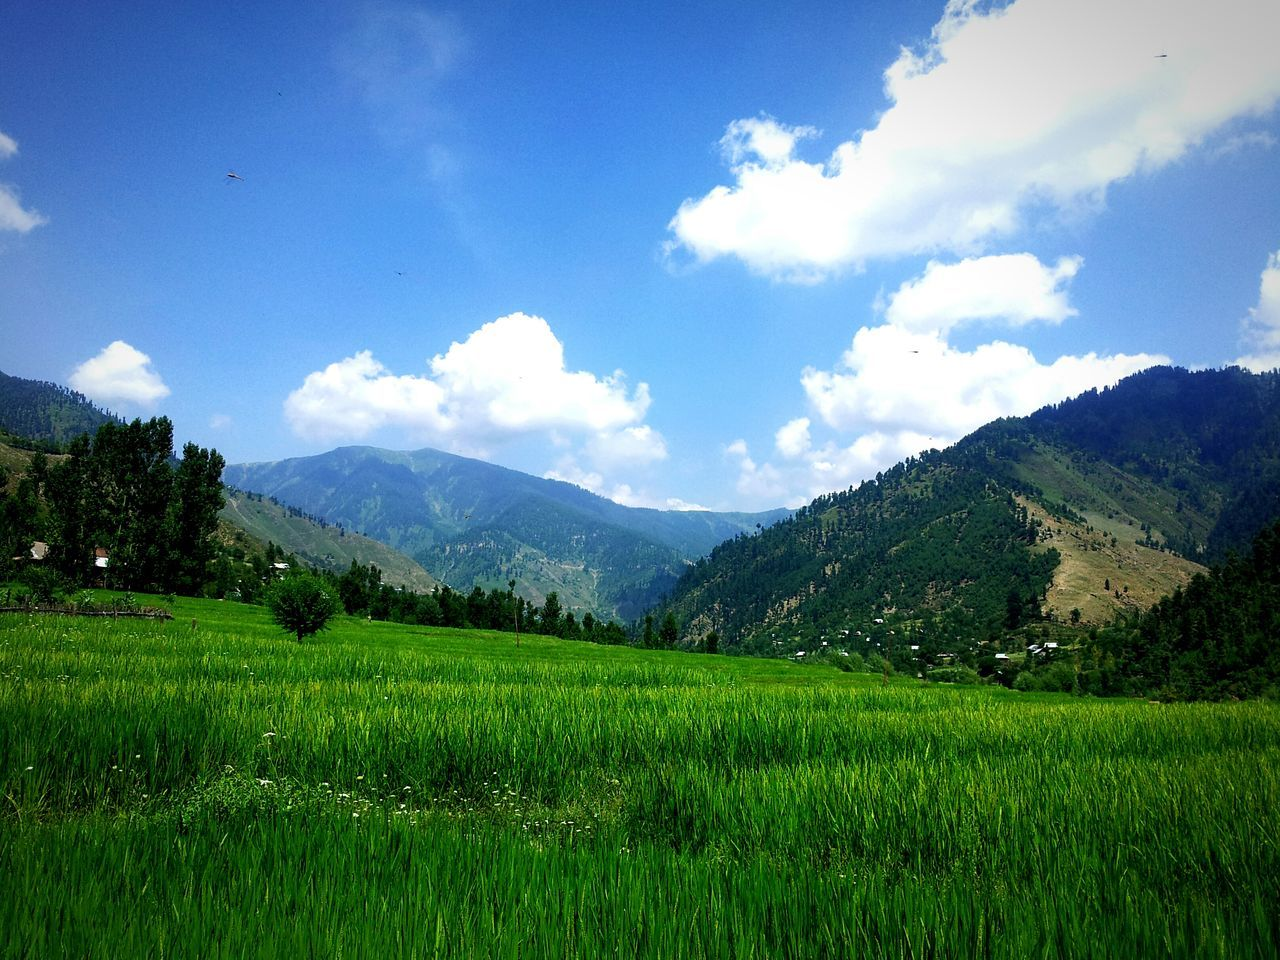 Lolab Lolab Valley Kupwara Handwara Kashmir Mountains Green Fields Summer ☀ Blue Sky White Clouds Sopore